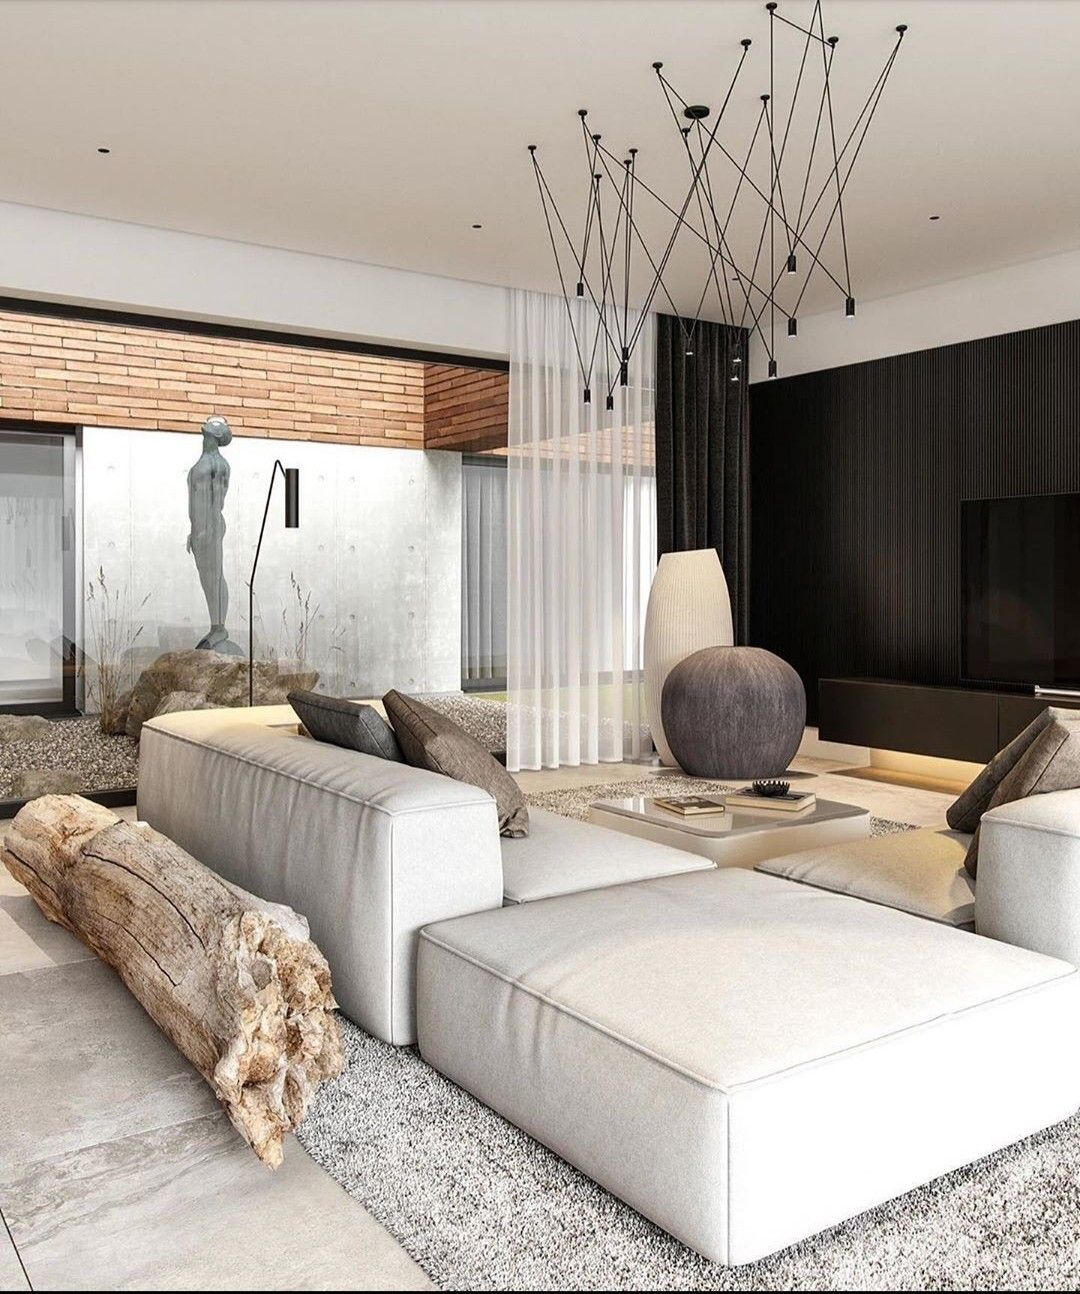 Pin by Phoebe Jules on living rooms in 2020 | Loft design, House interior,  Interior